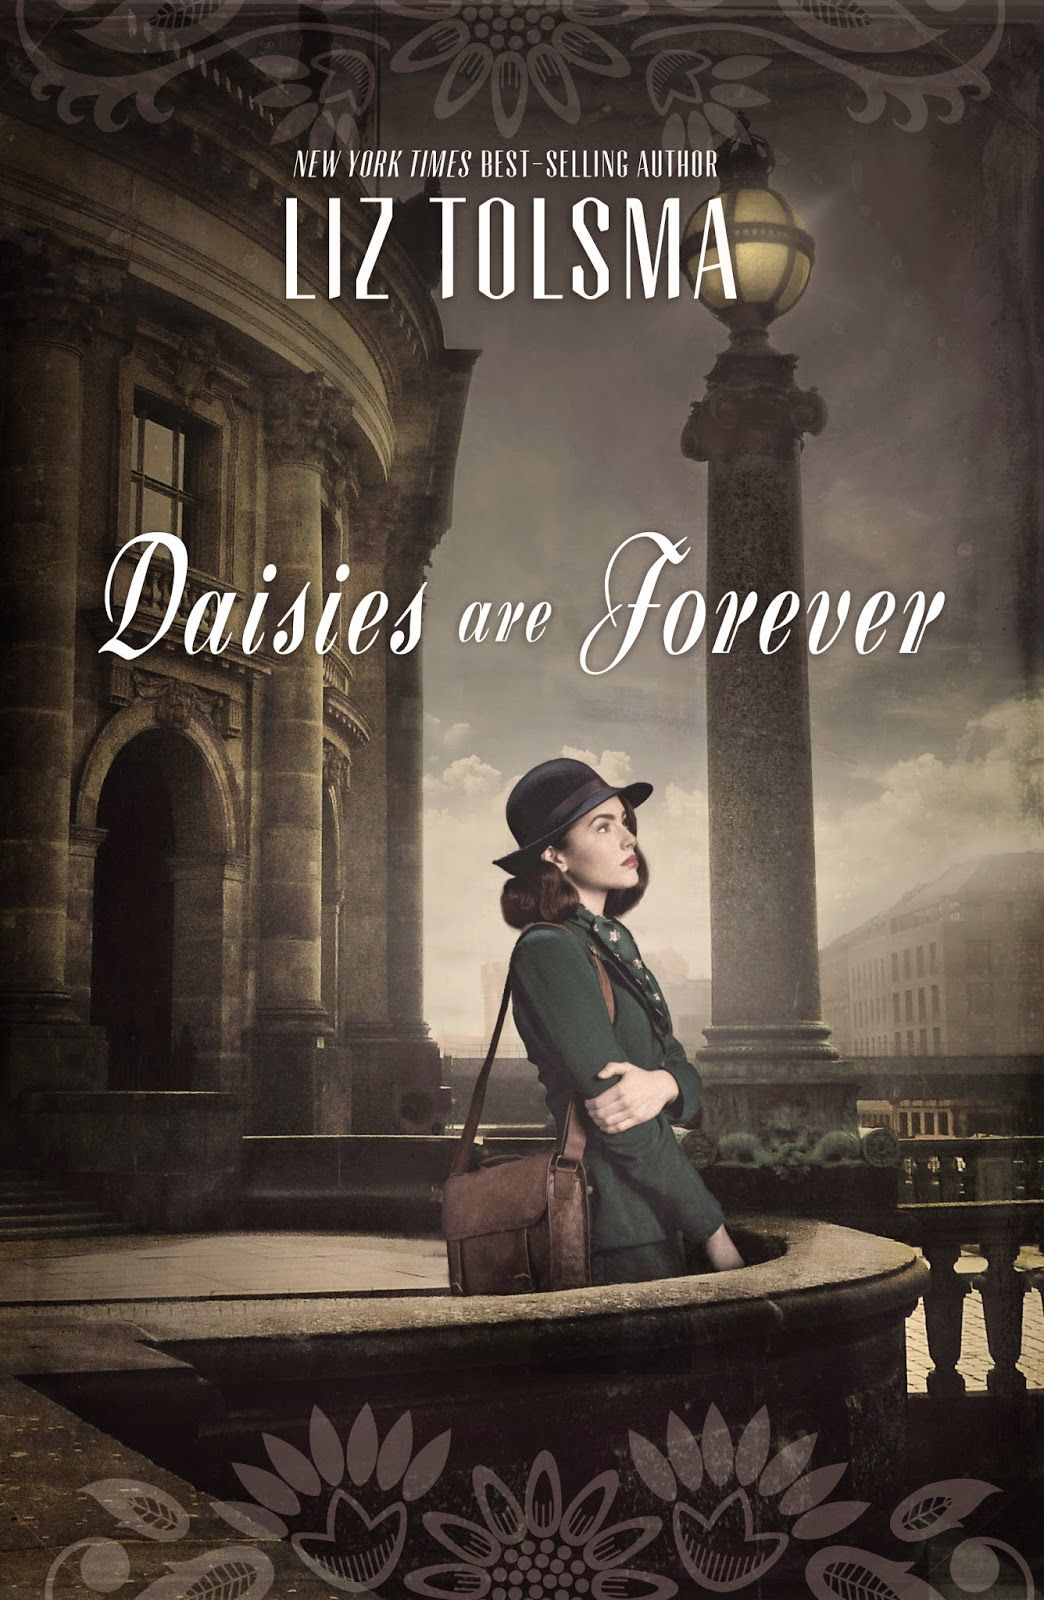 """Tolsma isn't afraid to detail the horrors of war as she depicts how tragedies can be obstacles to one's Christian beliefs."" —Romantic Times... WWII novel based on family true life stories - by Liz TOLSMA"